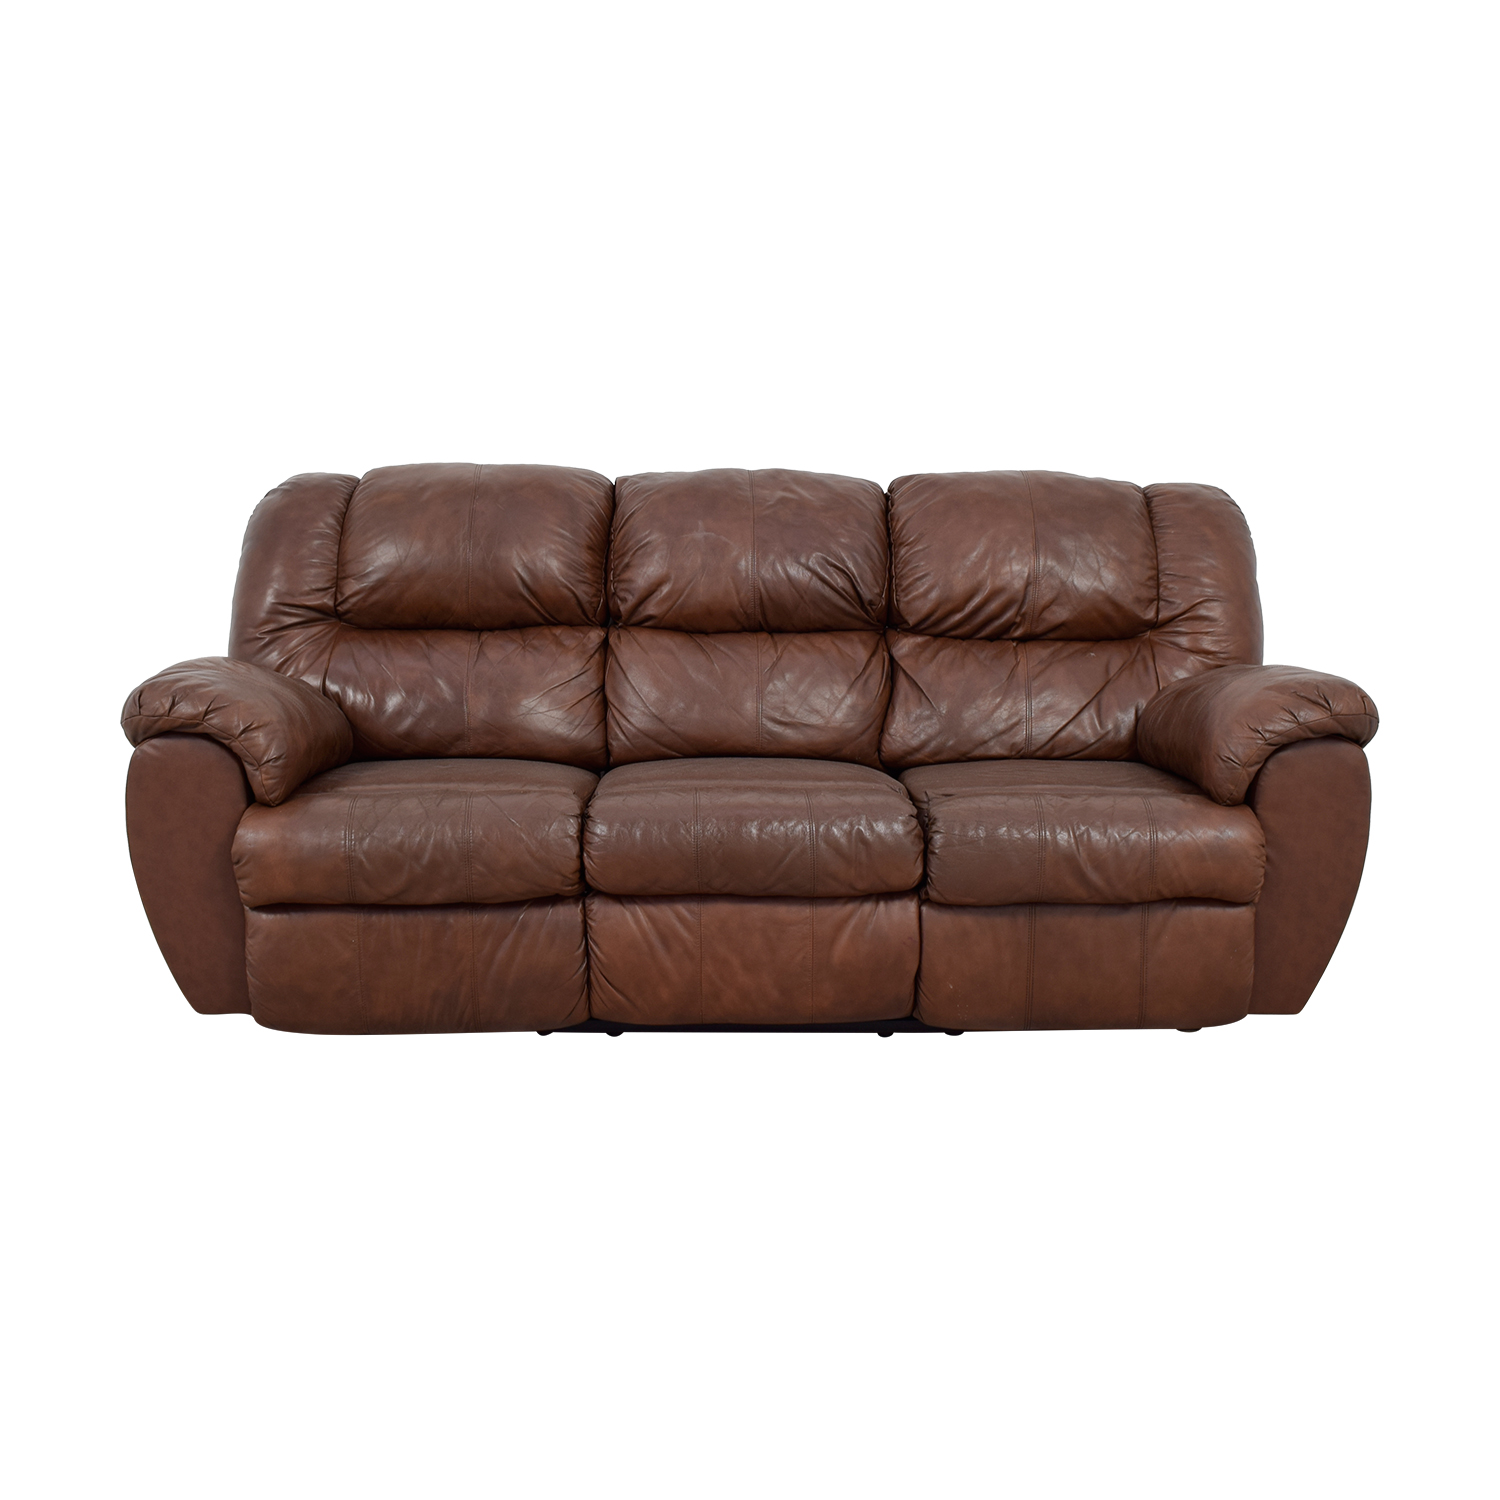 80% OFF - Ashley Furniture Ashley Furniture Dual Reclining Brown ...